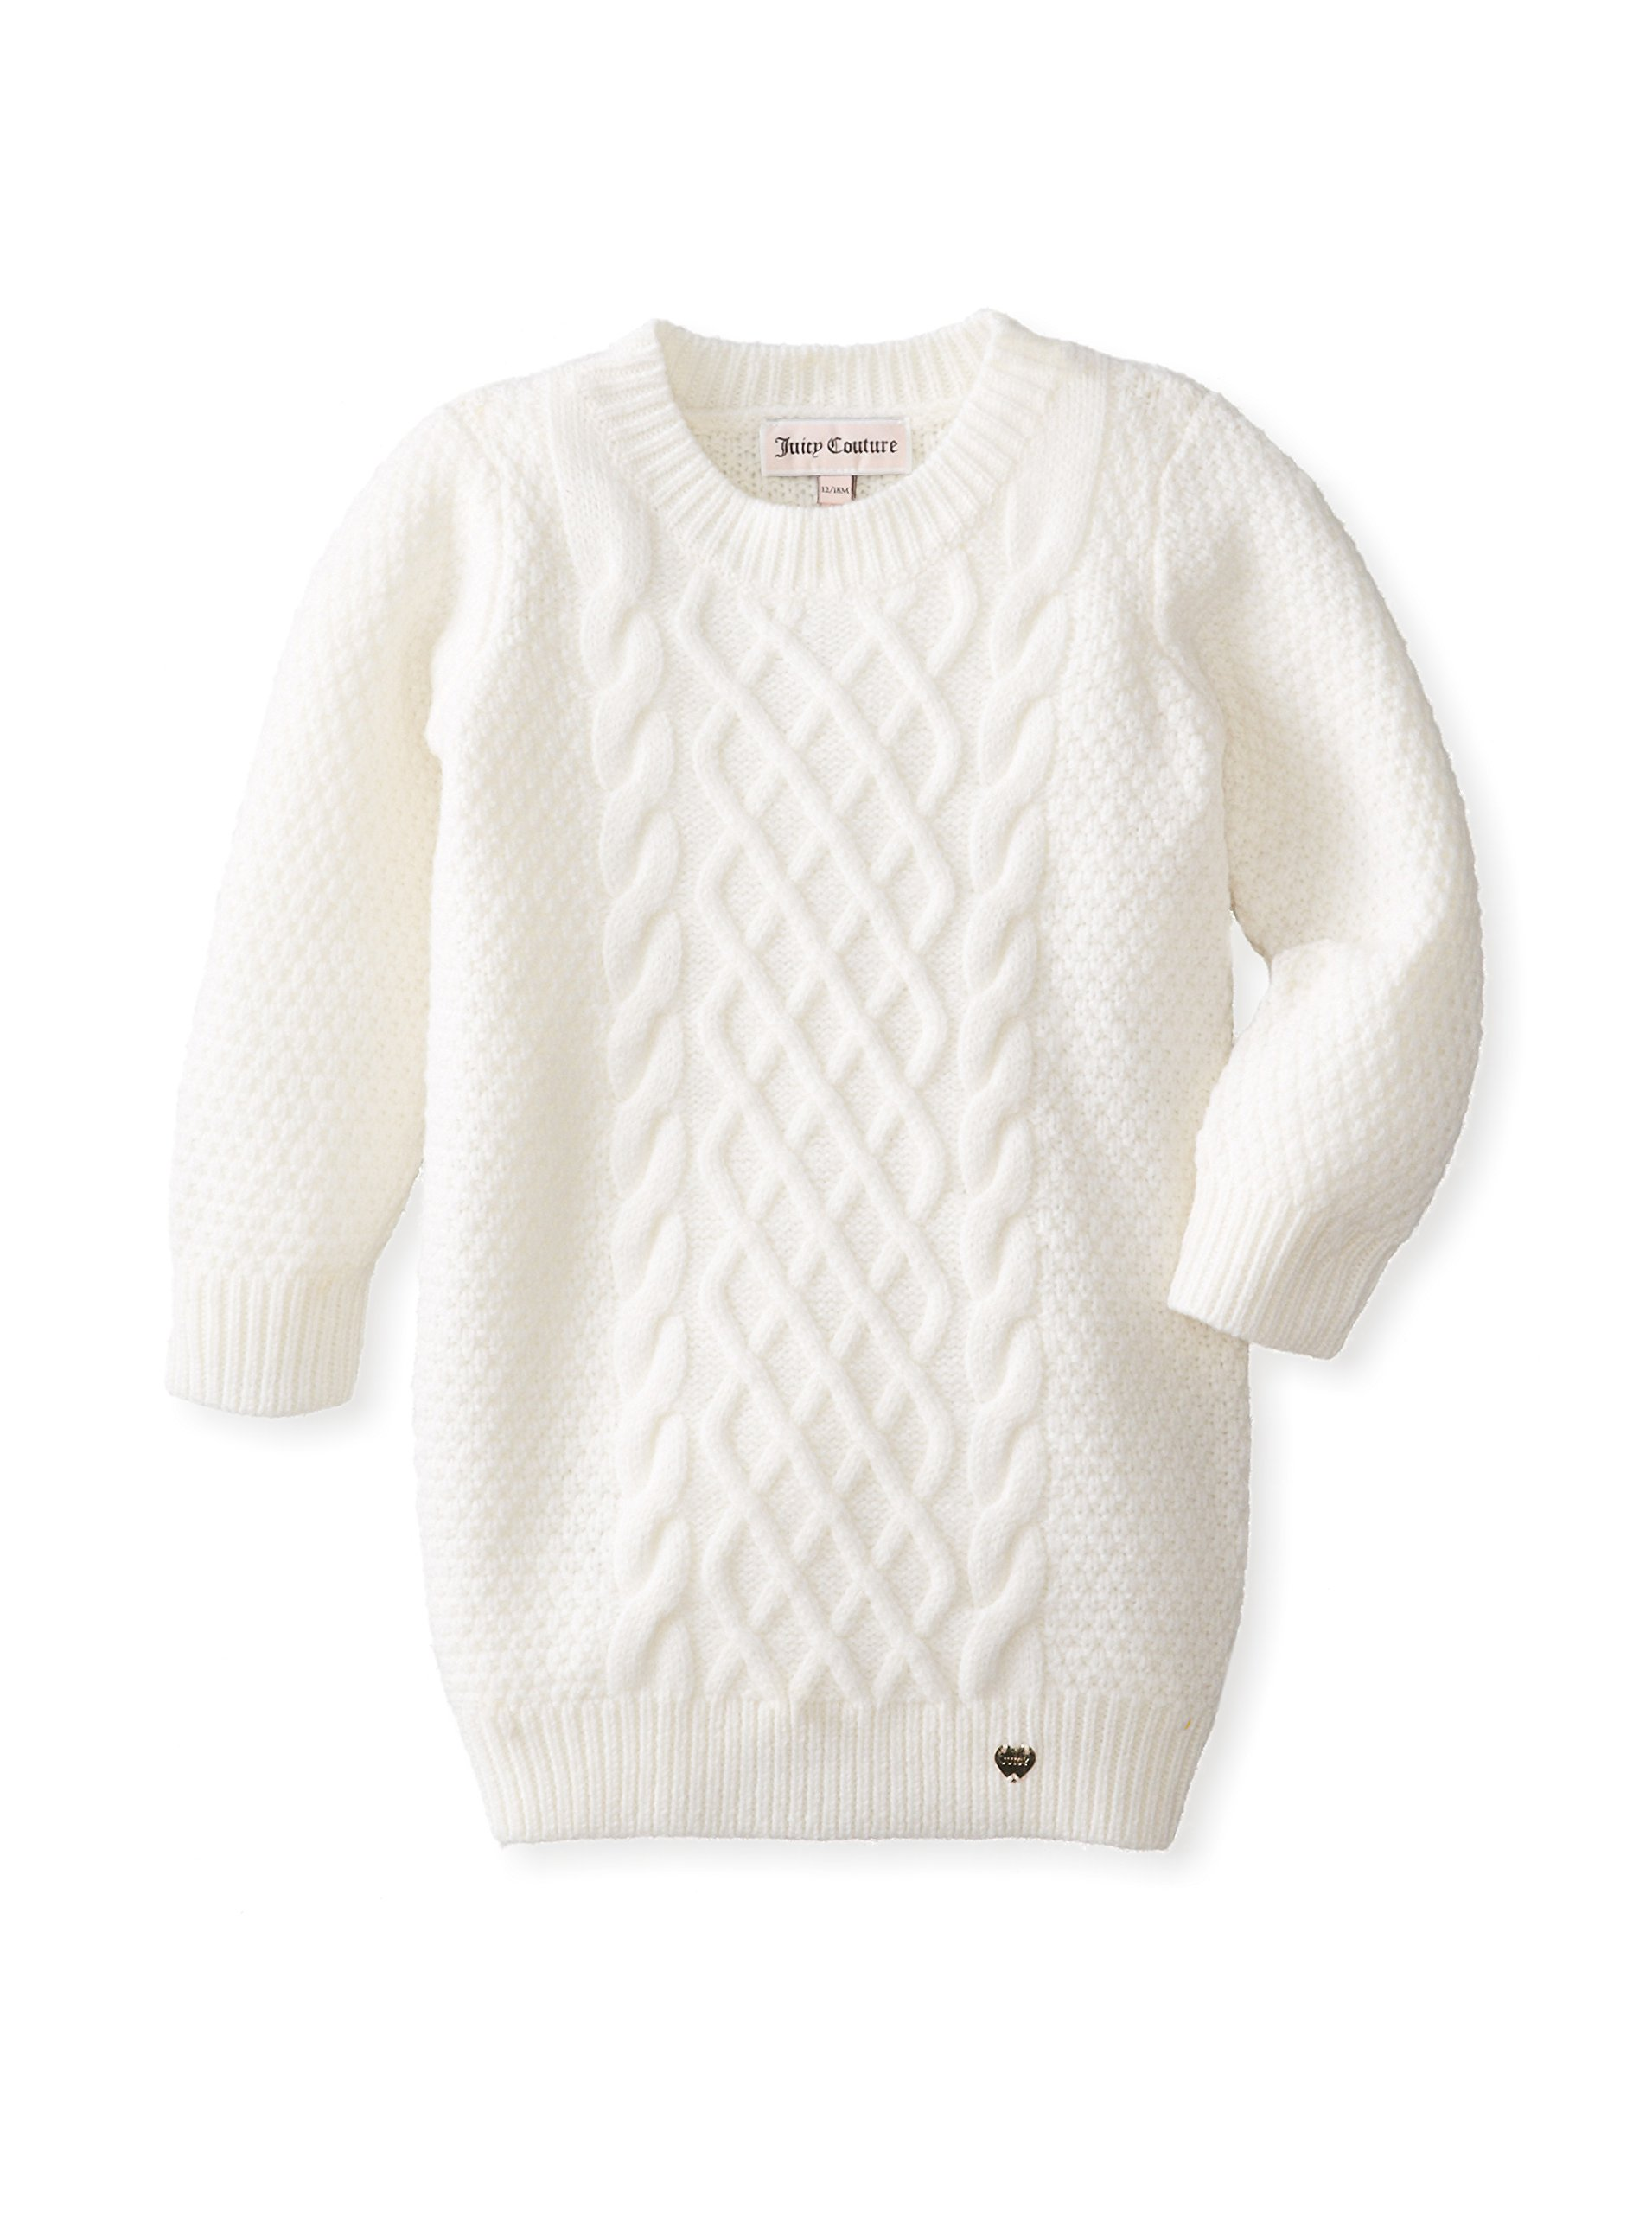 Juicy Couture Sweater 12-18 Months by Juicy Couture